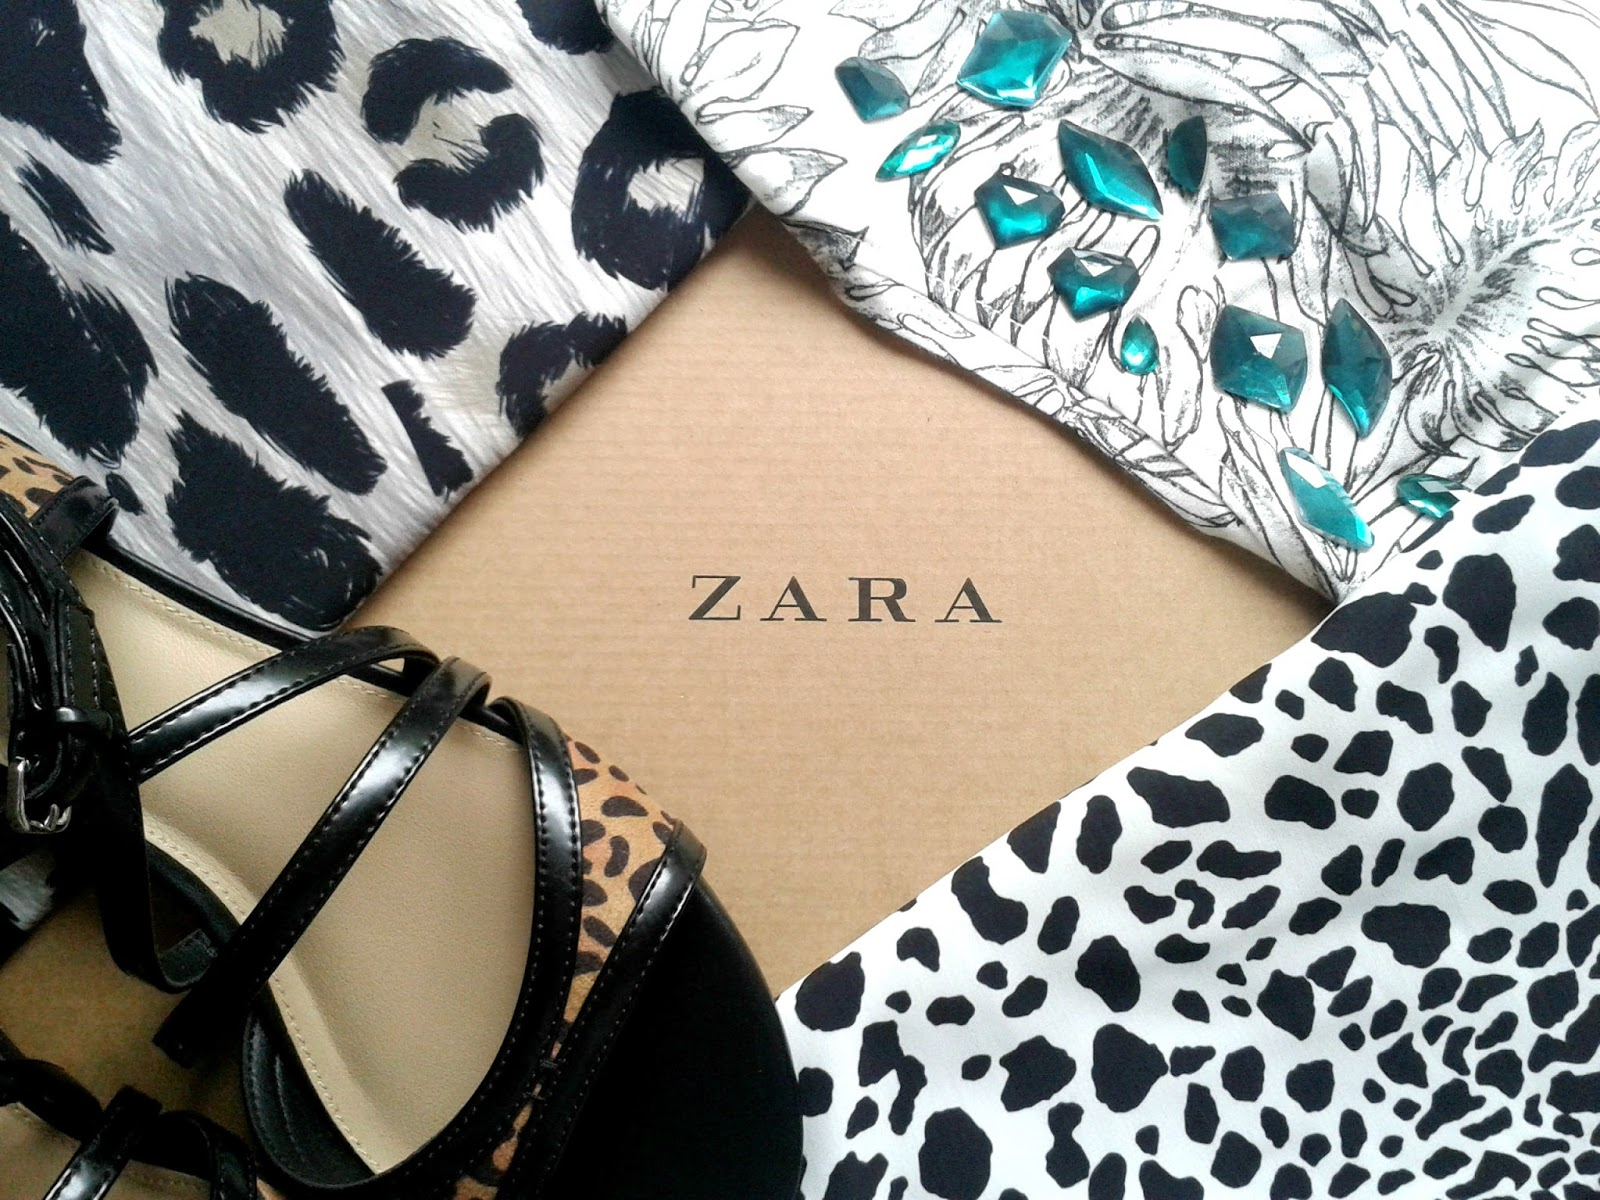 Zara Sale Haul Blog Review